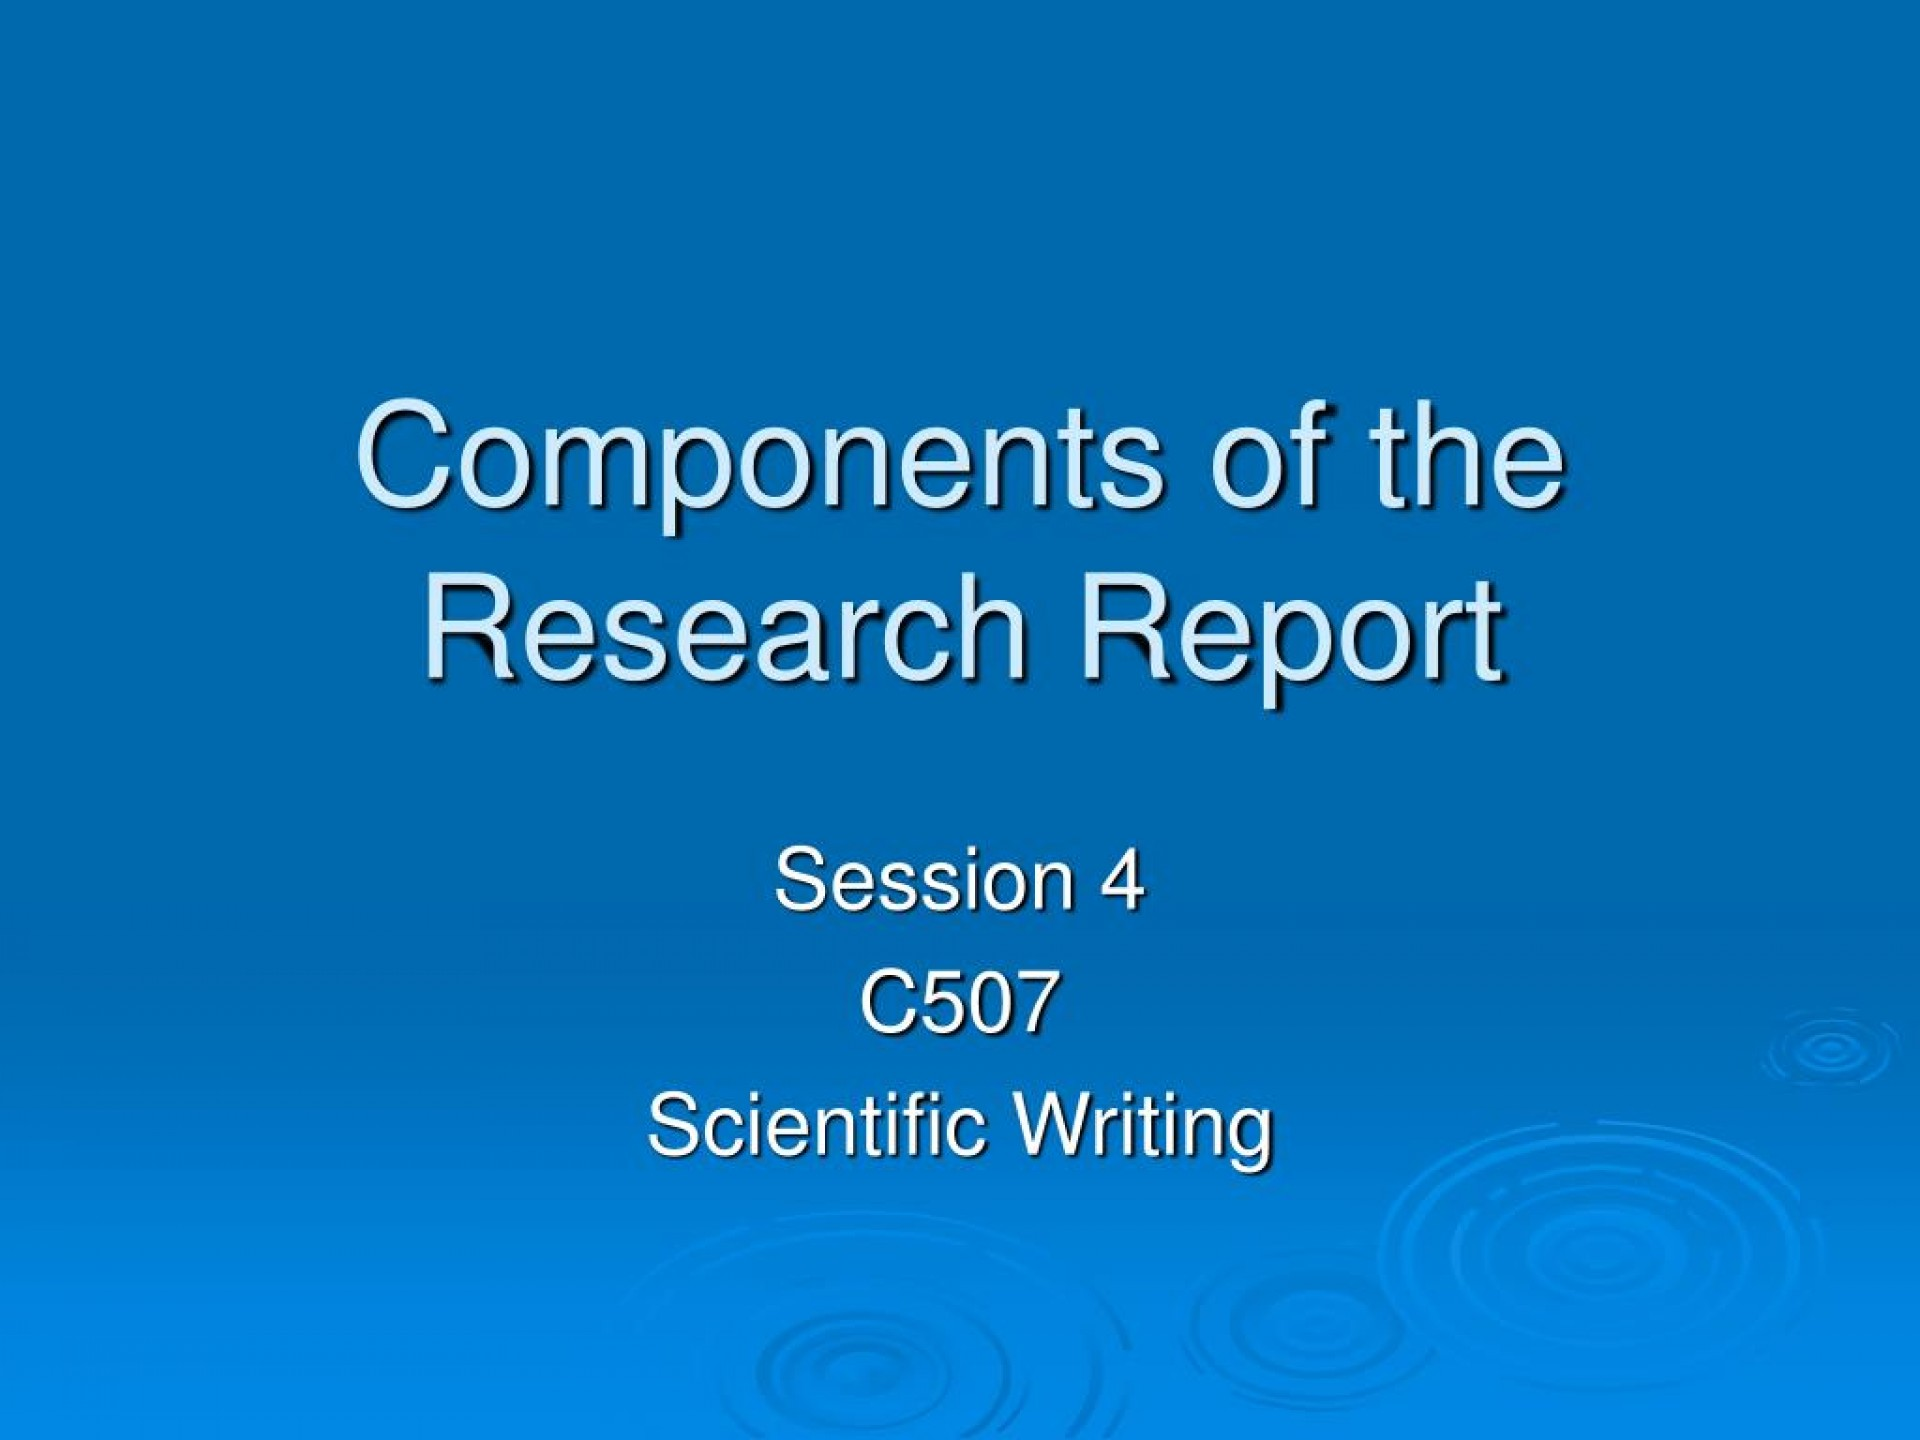 001 Research Paper Components Of The Report L Component Wondrous Ppt 5 Parts A Qualitative 1920